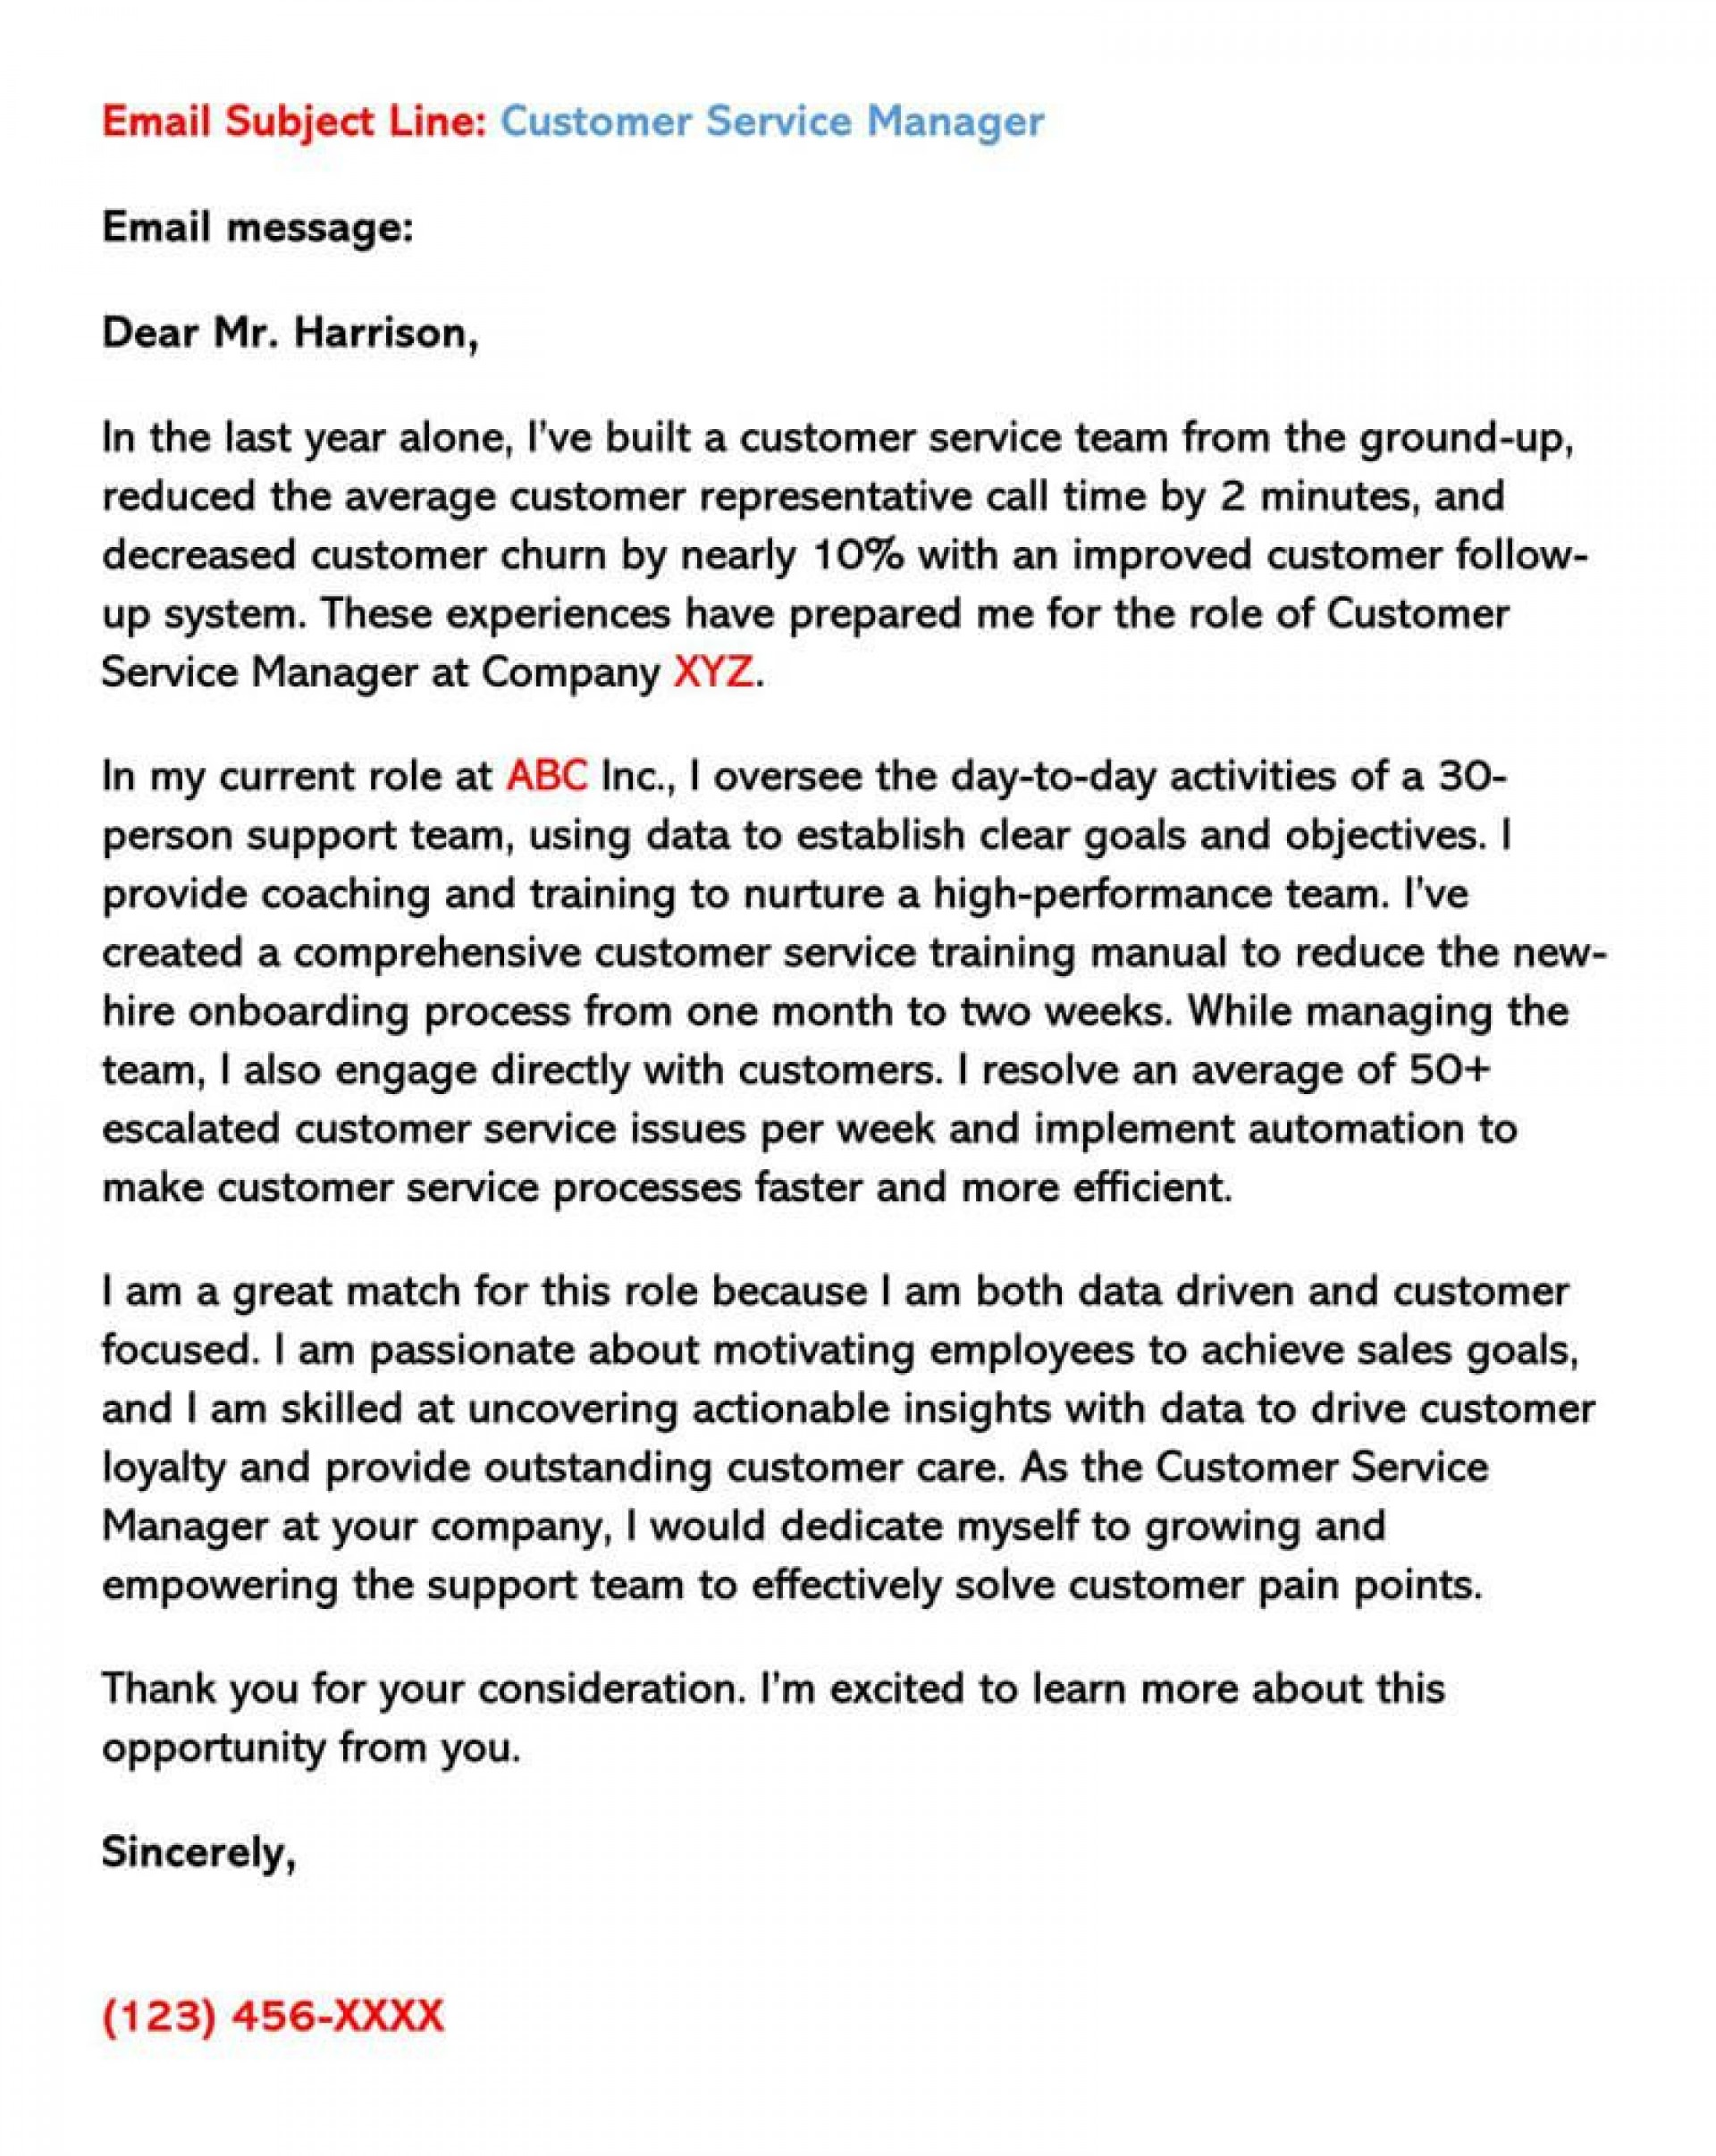 009 Dreaded Email Cover Letter Example For Customer Service Picture  Sample Representative1920